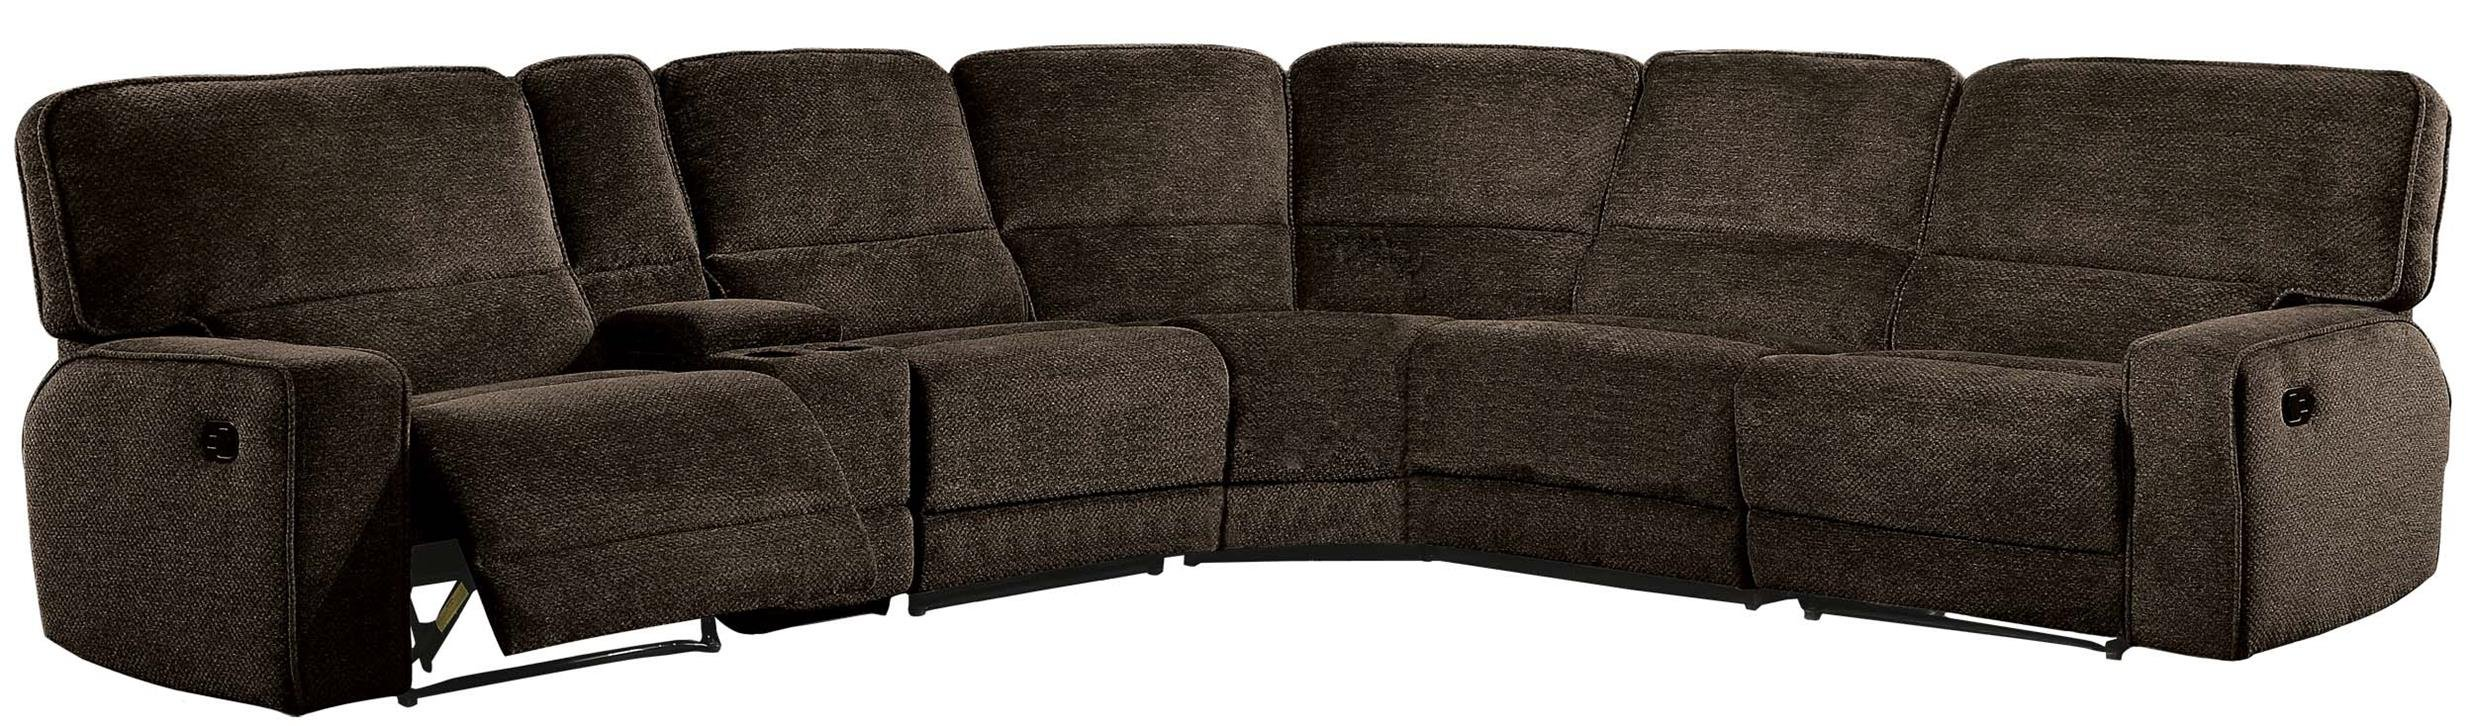 Homelegance Shreveport 6-Piece Sectional with Three Reclining Chairs, and Center Cup holders Console Fabric Chenille, Brown by Homelegance